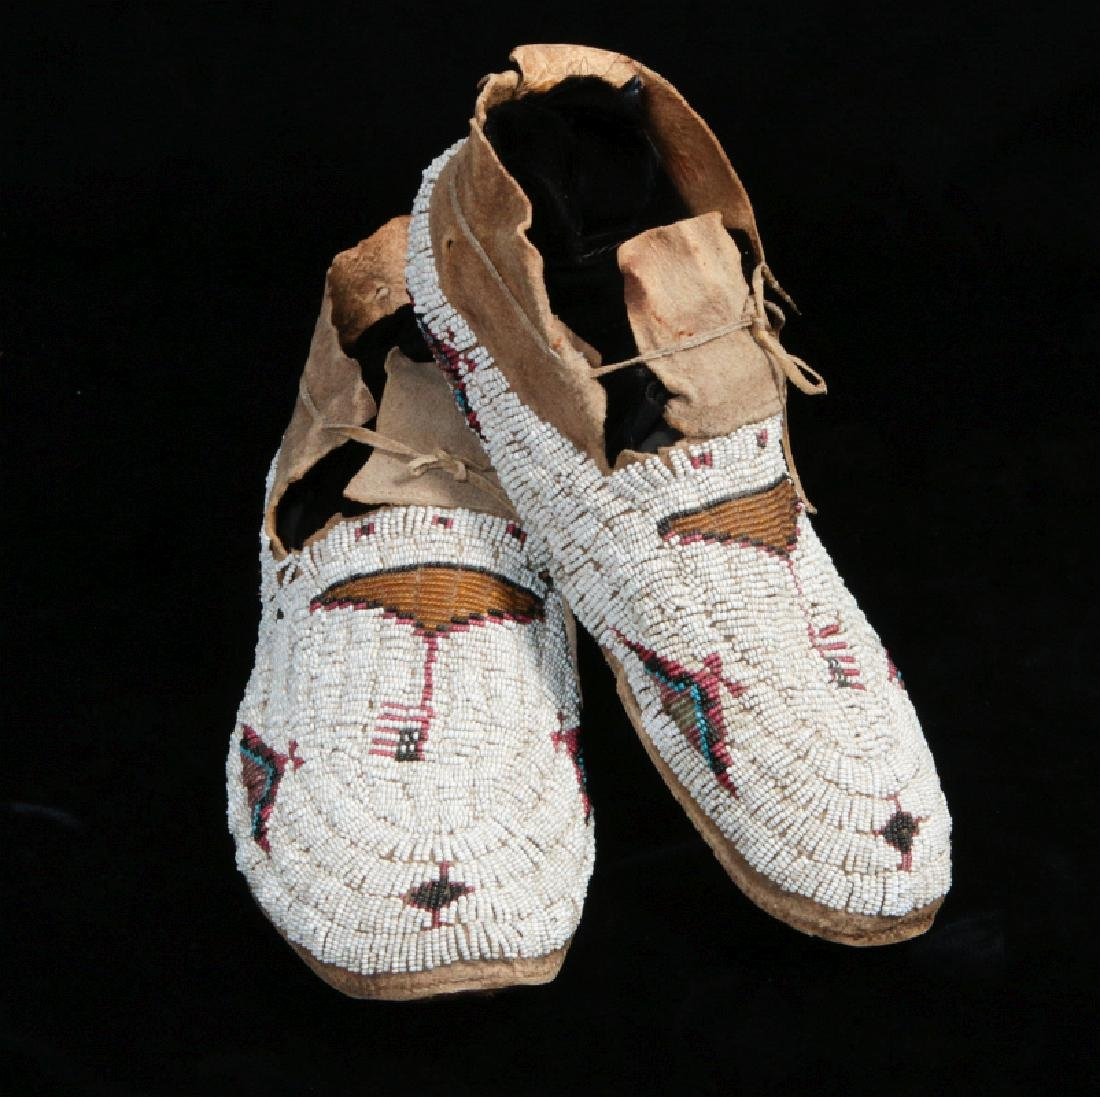 NORTHERN PLAINS BEADED MOCCASINS WITH AMERICAN FLAGS